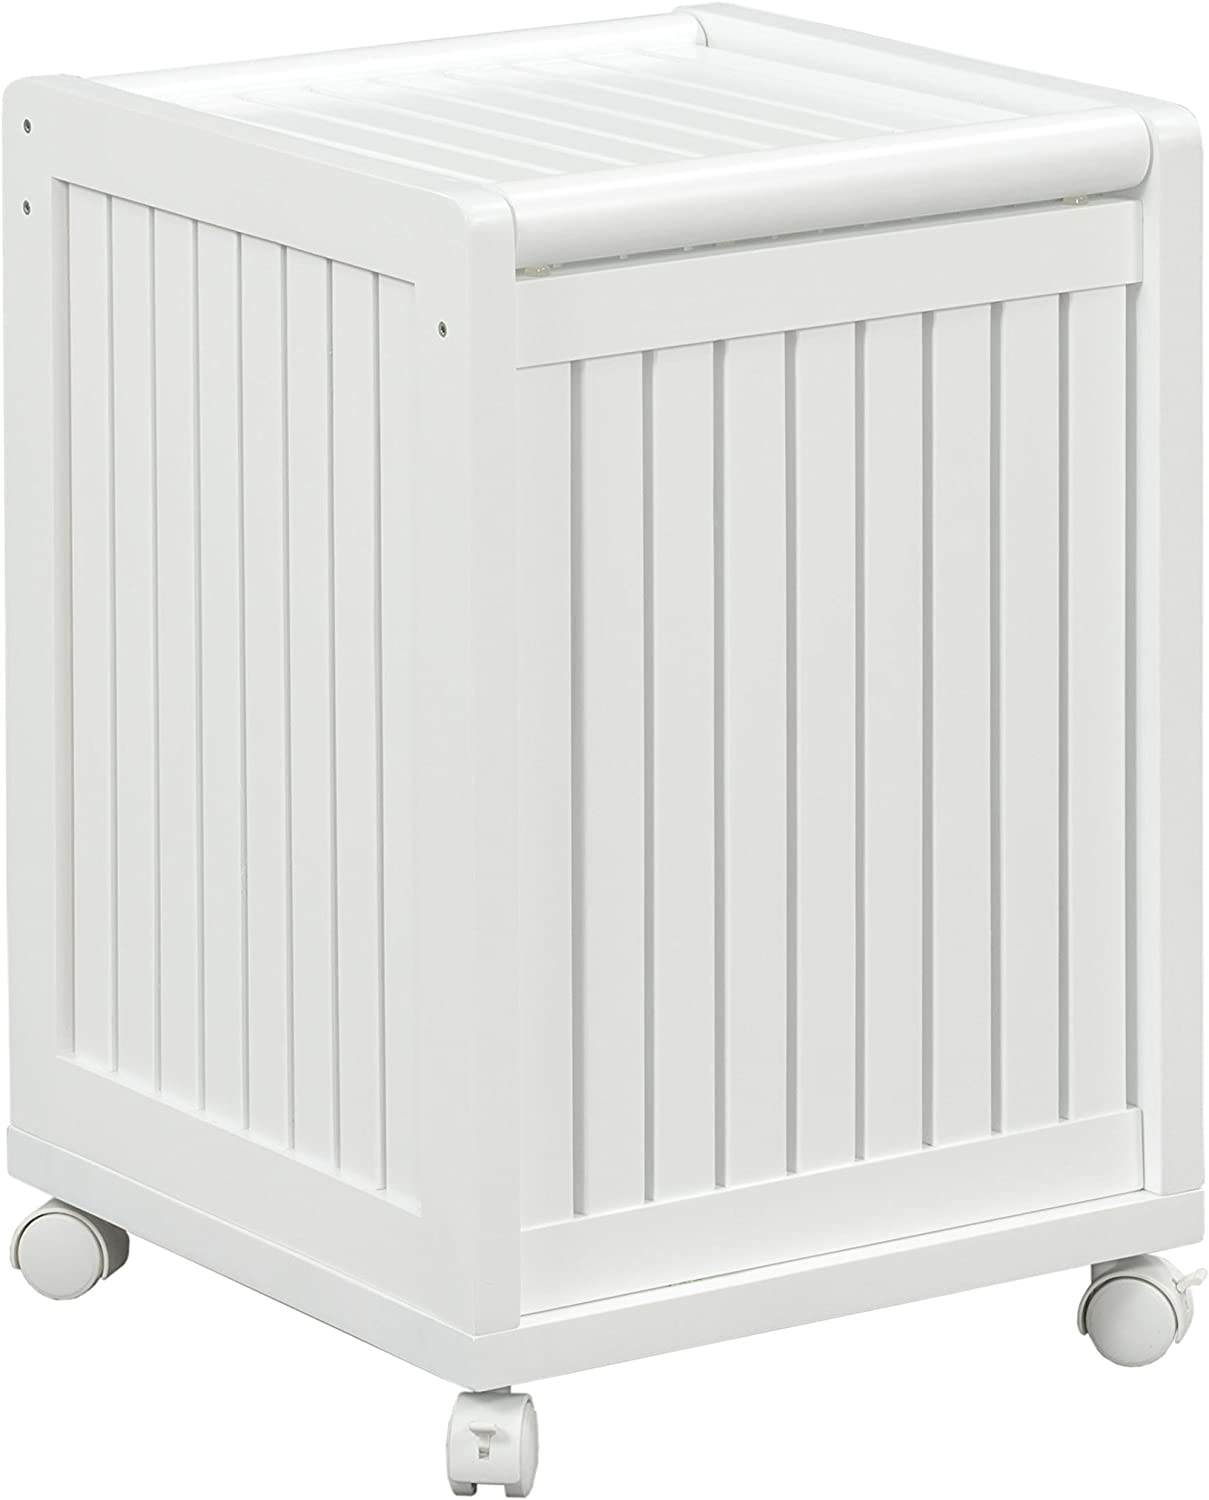 New Ridge Home Goods Abingdon Solid Birch Wood Mobile Hamper with Lid, White